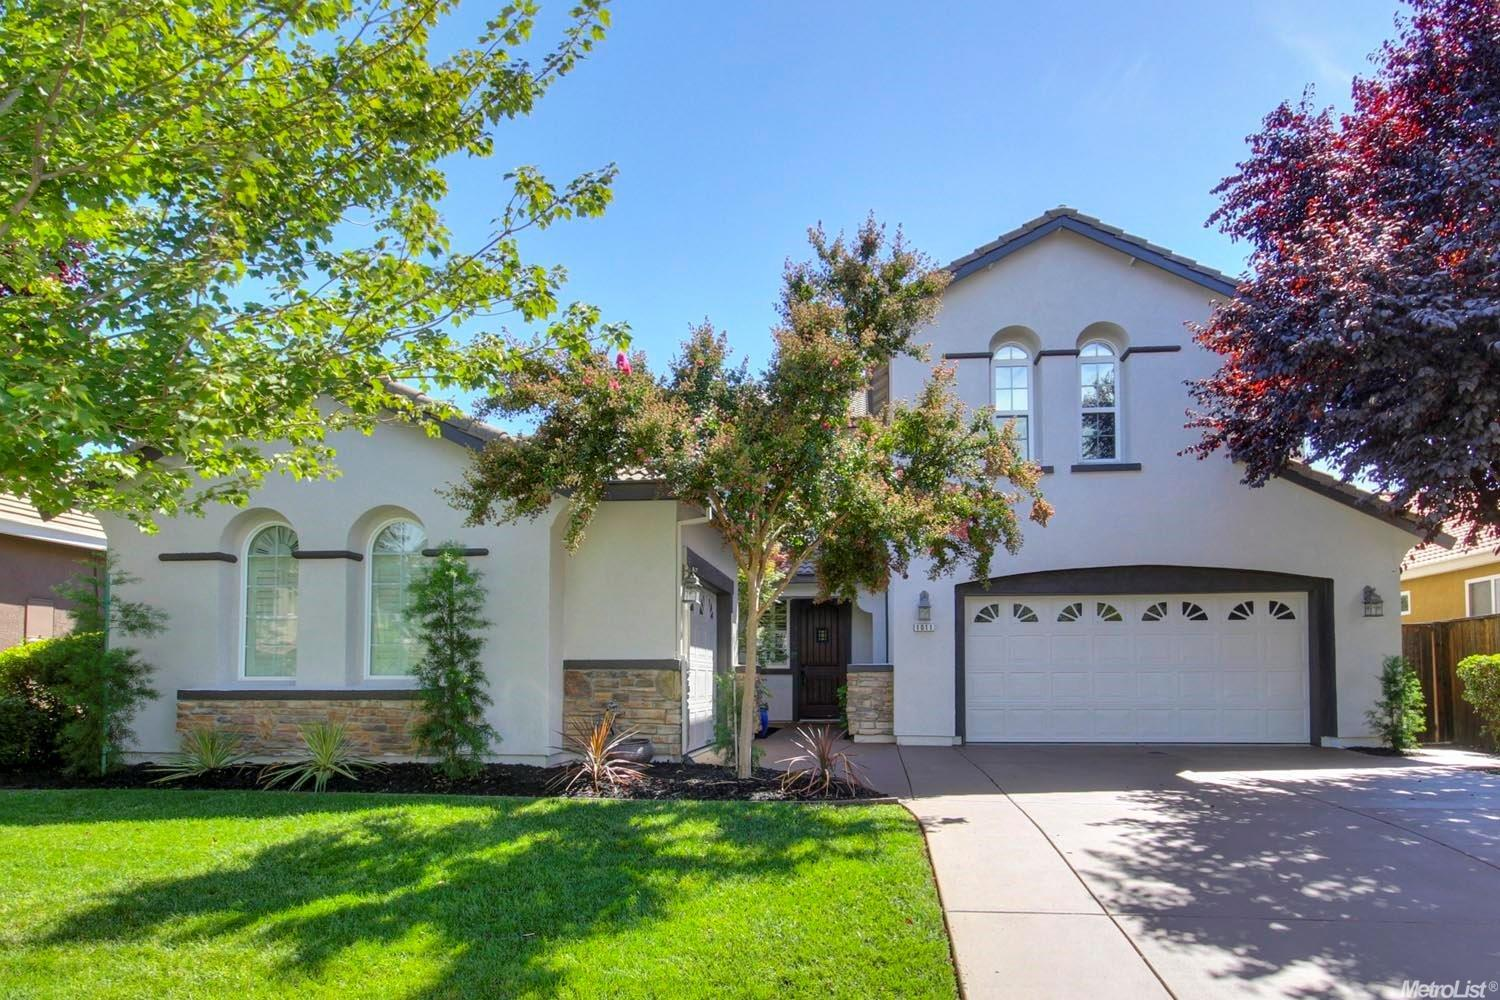 1011 Waterford Dr, West Sacramento, CA 95605